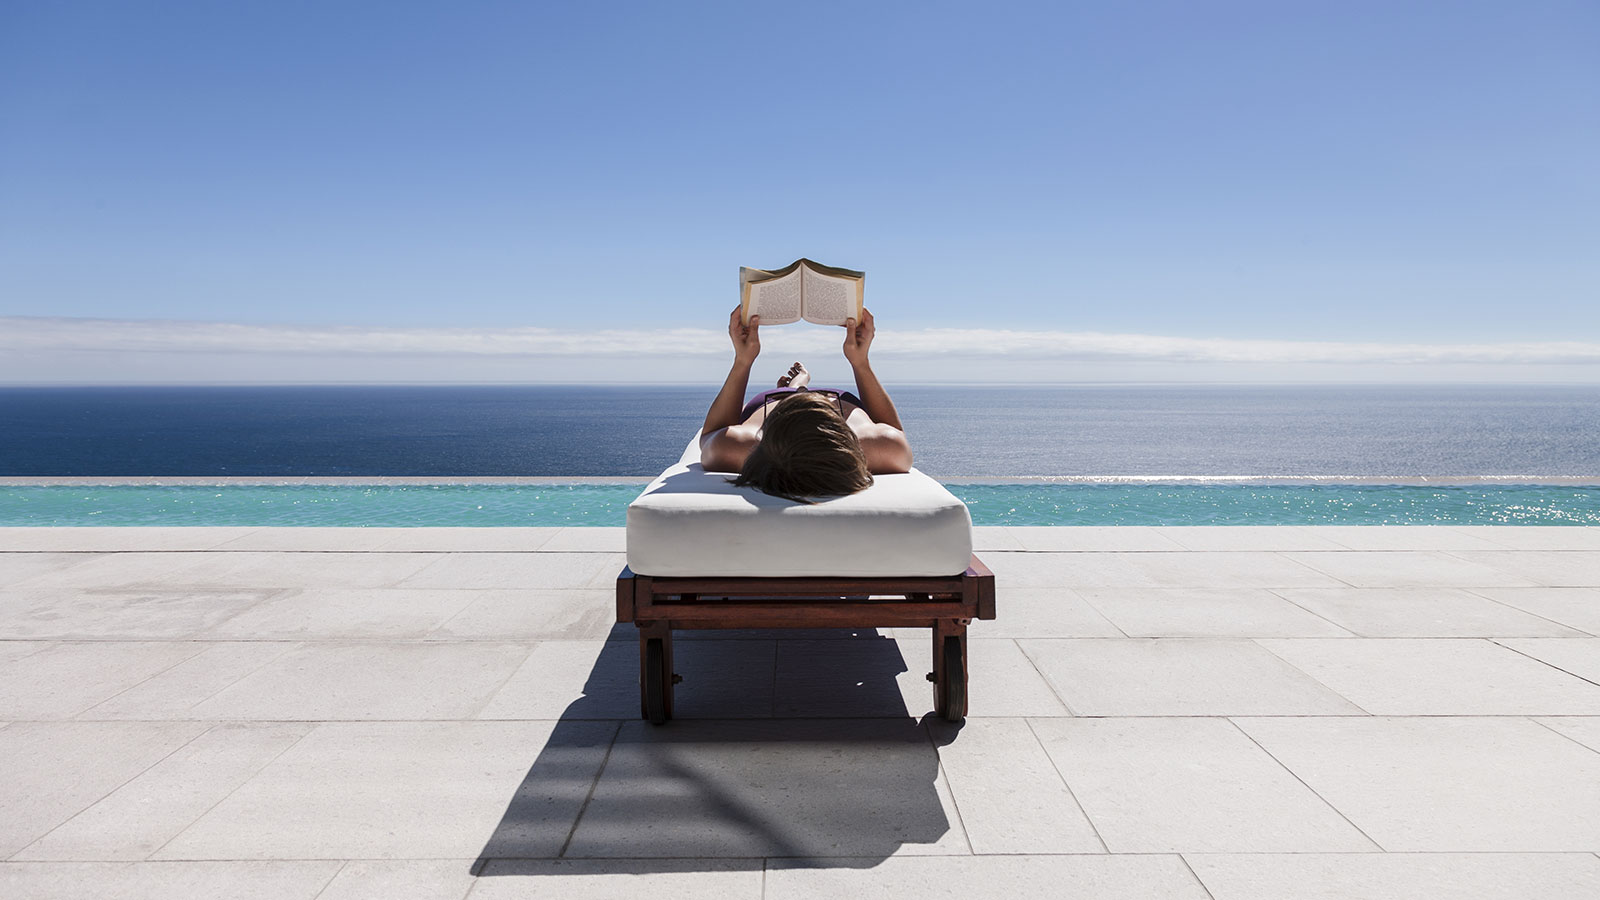 A woman reading a book while reclining on a lounge chair overlooking the beach.